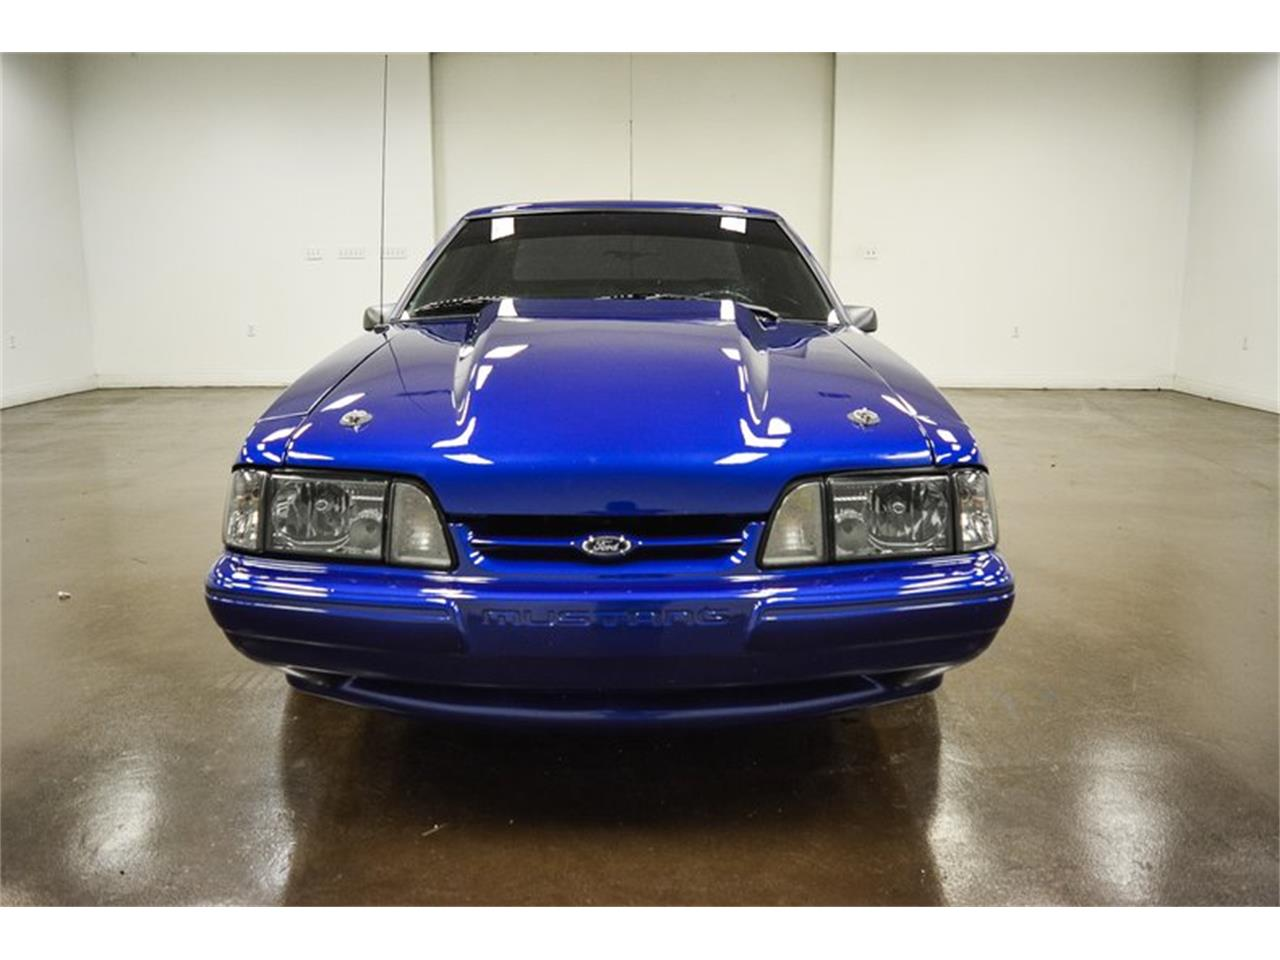 Large Picture of 1991 Ford Mustang located in Texas - $14,999.00 - PNVK